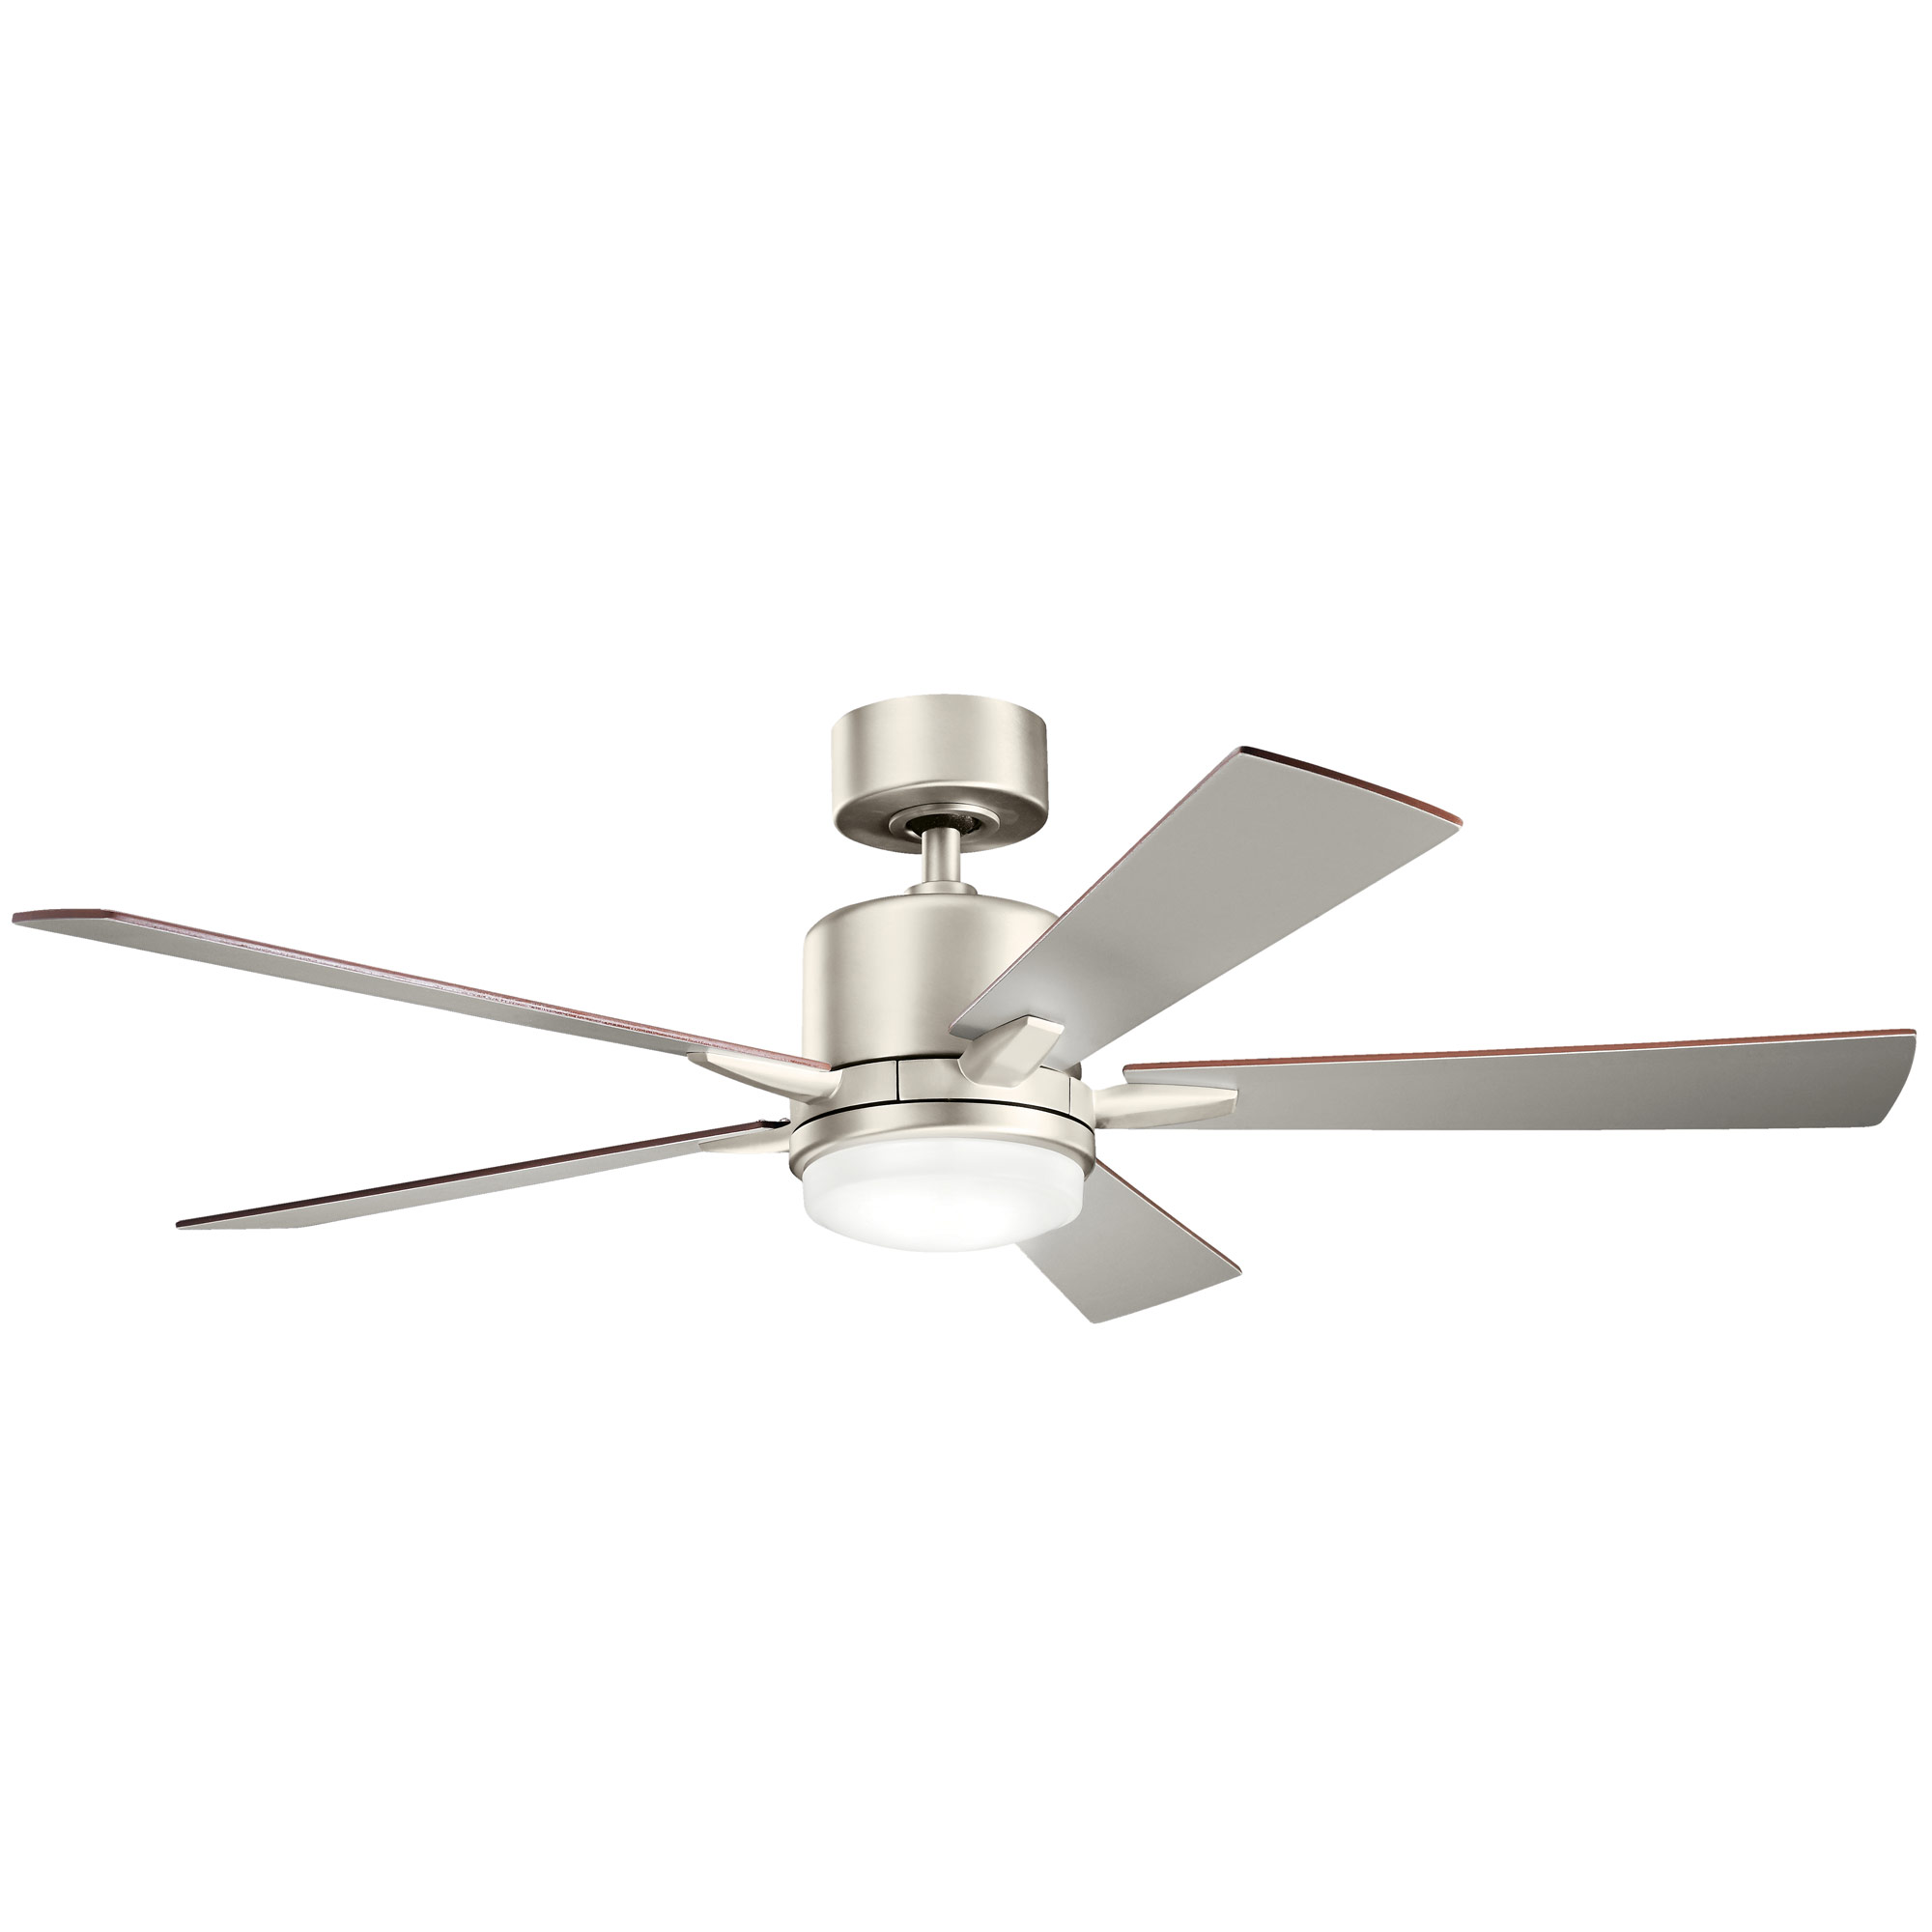 hight resolution of lucian ceiling fan with light by kichler